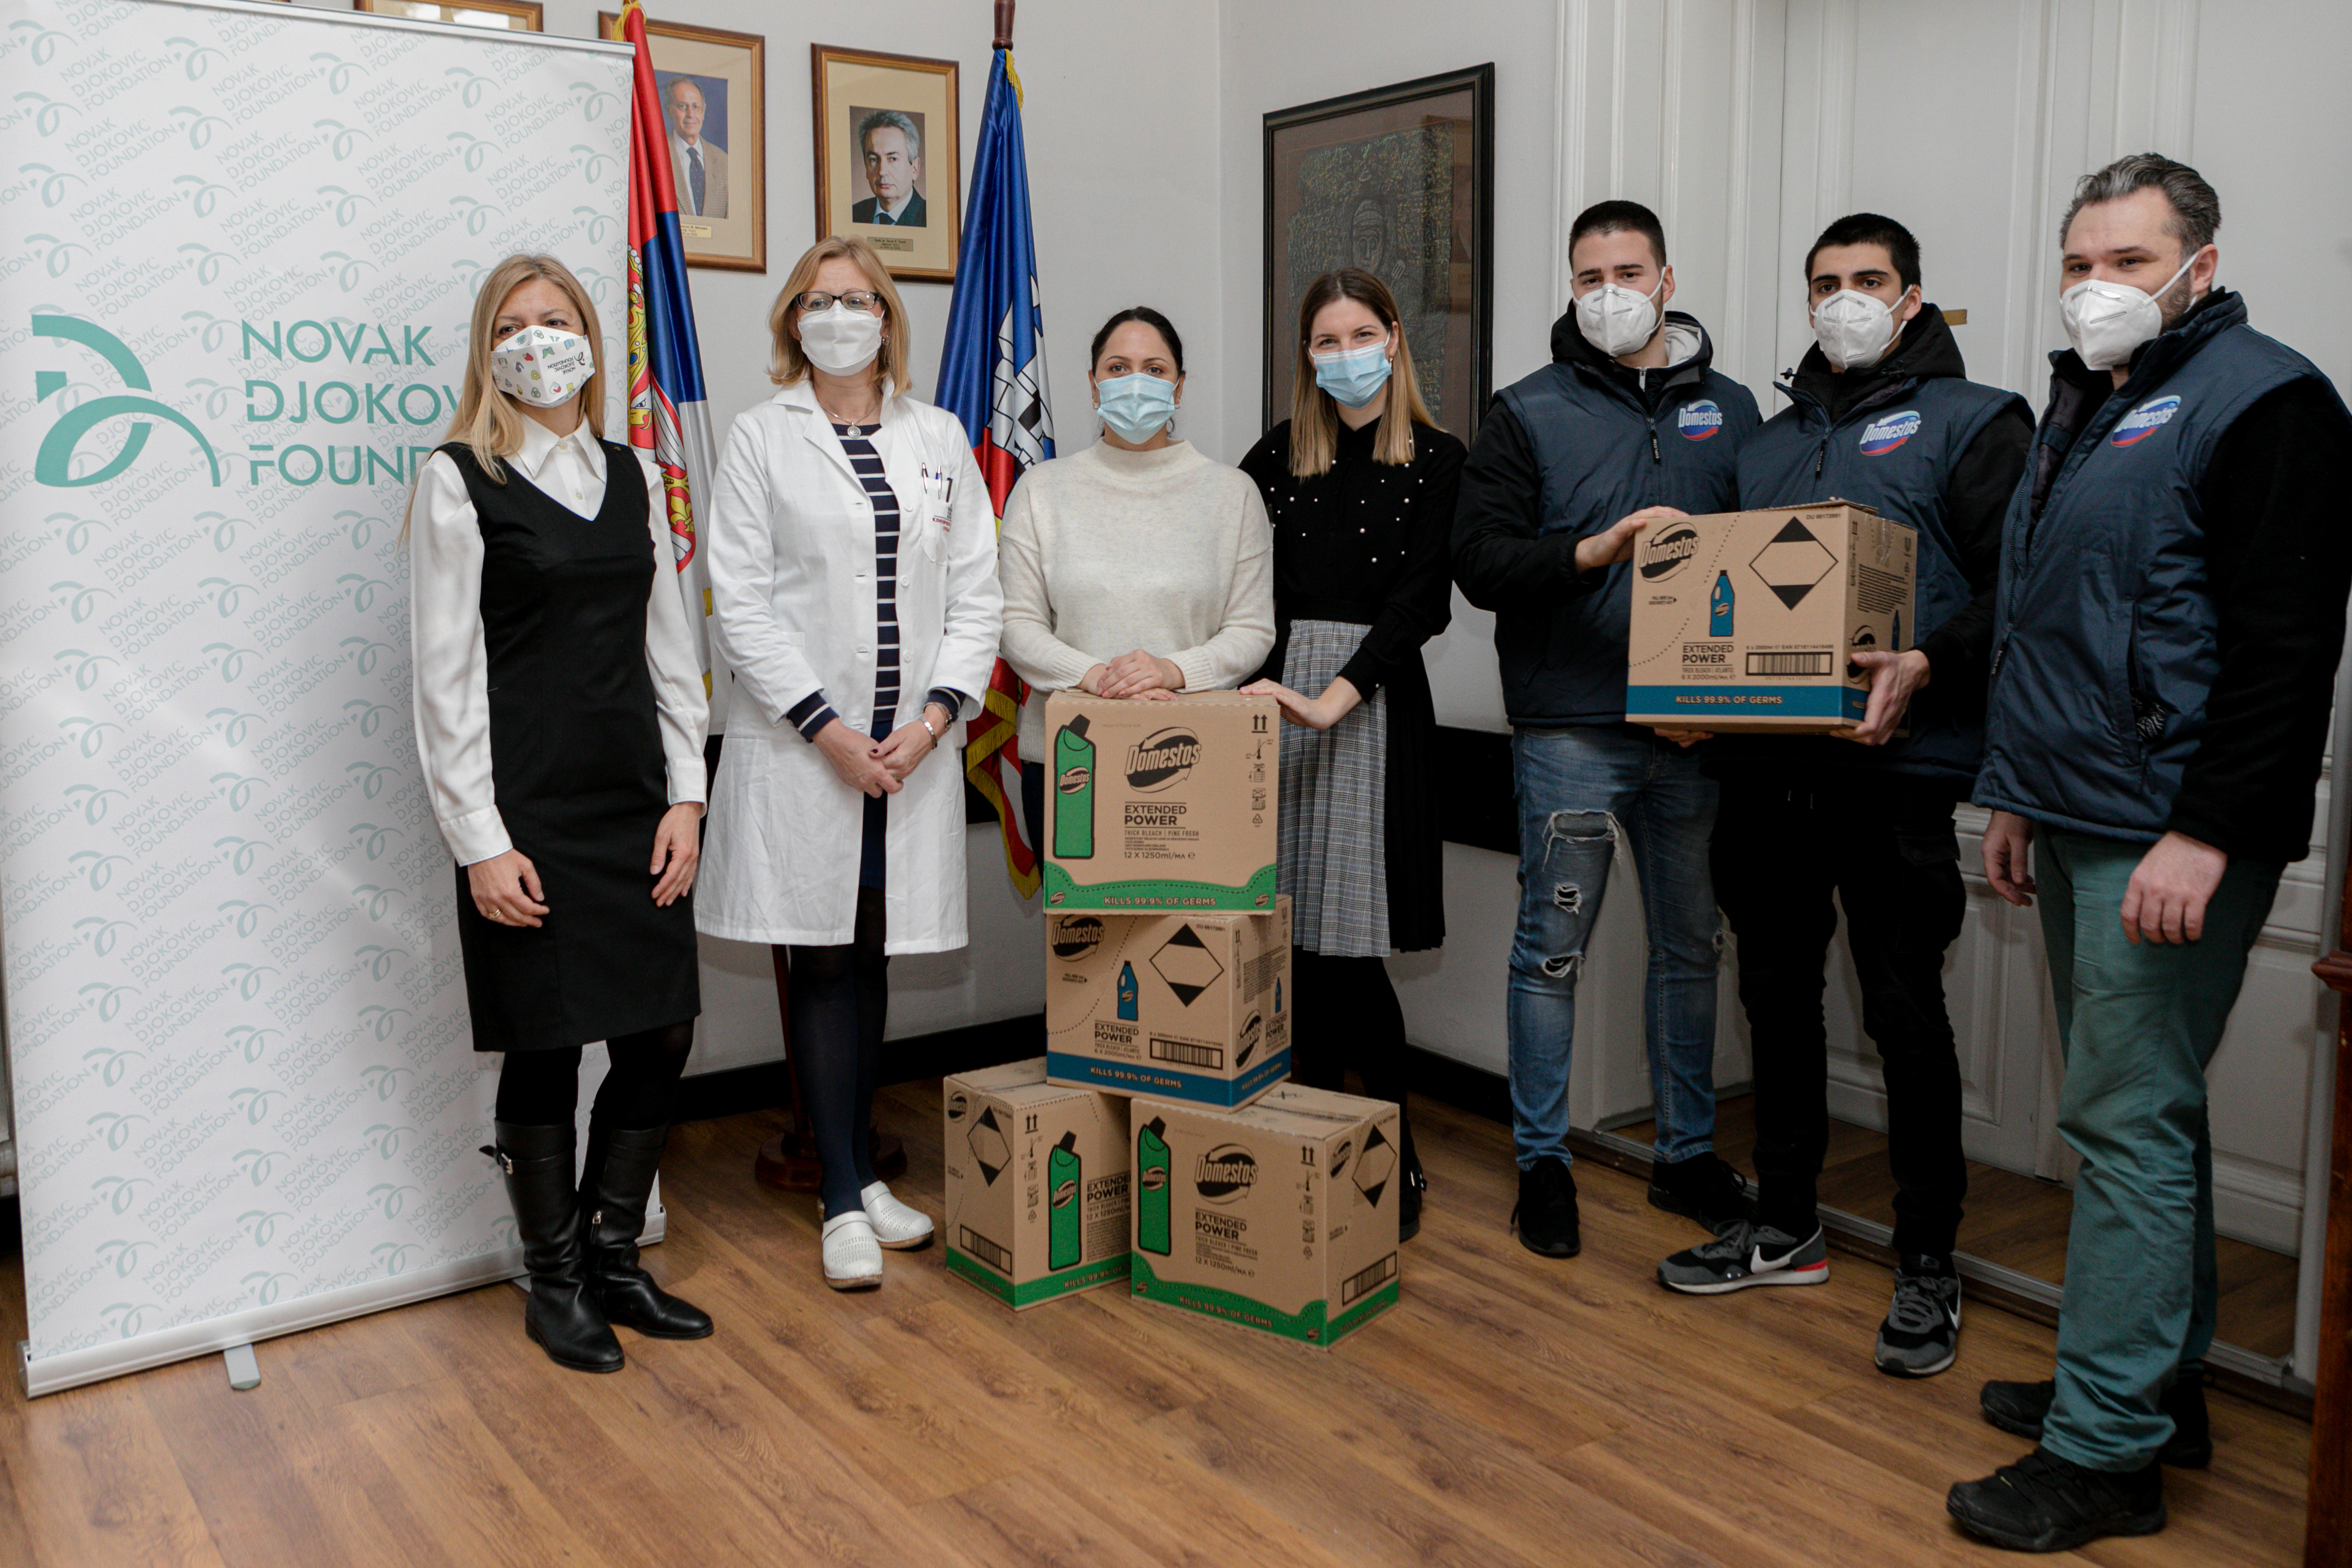 The donation of 16,400 liters of Domestos products was distributed to hospitals throughout Serbia according to their priorities and needs.